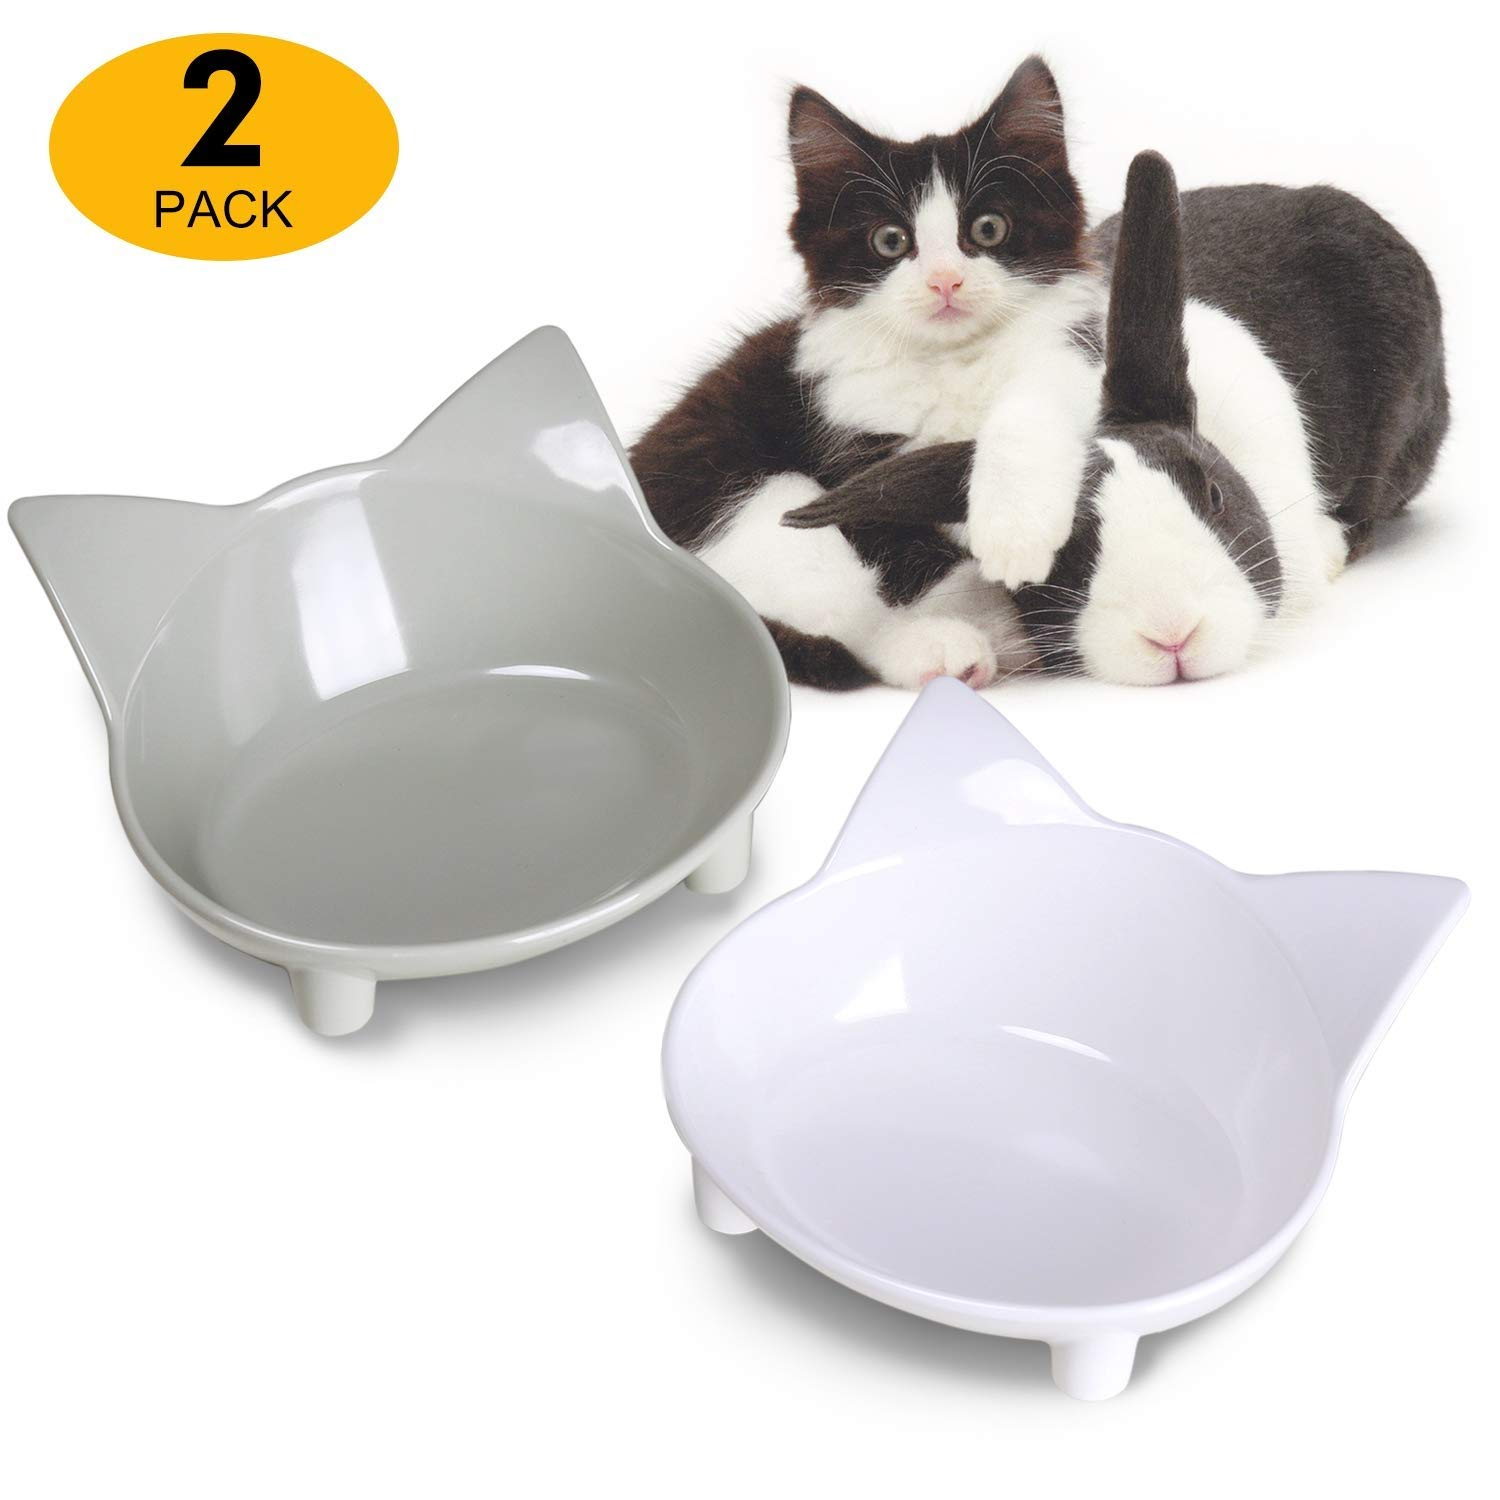 Cat Bowls, Water Bowl Feeding Bowl Kitten Cat Dish Pet Food Bowl Cat Feeder Relief Safe Food Grade Melamine